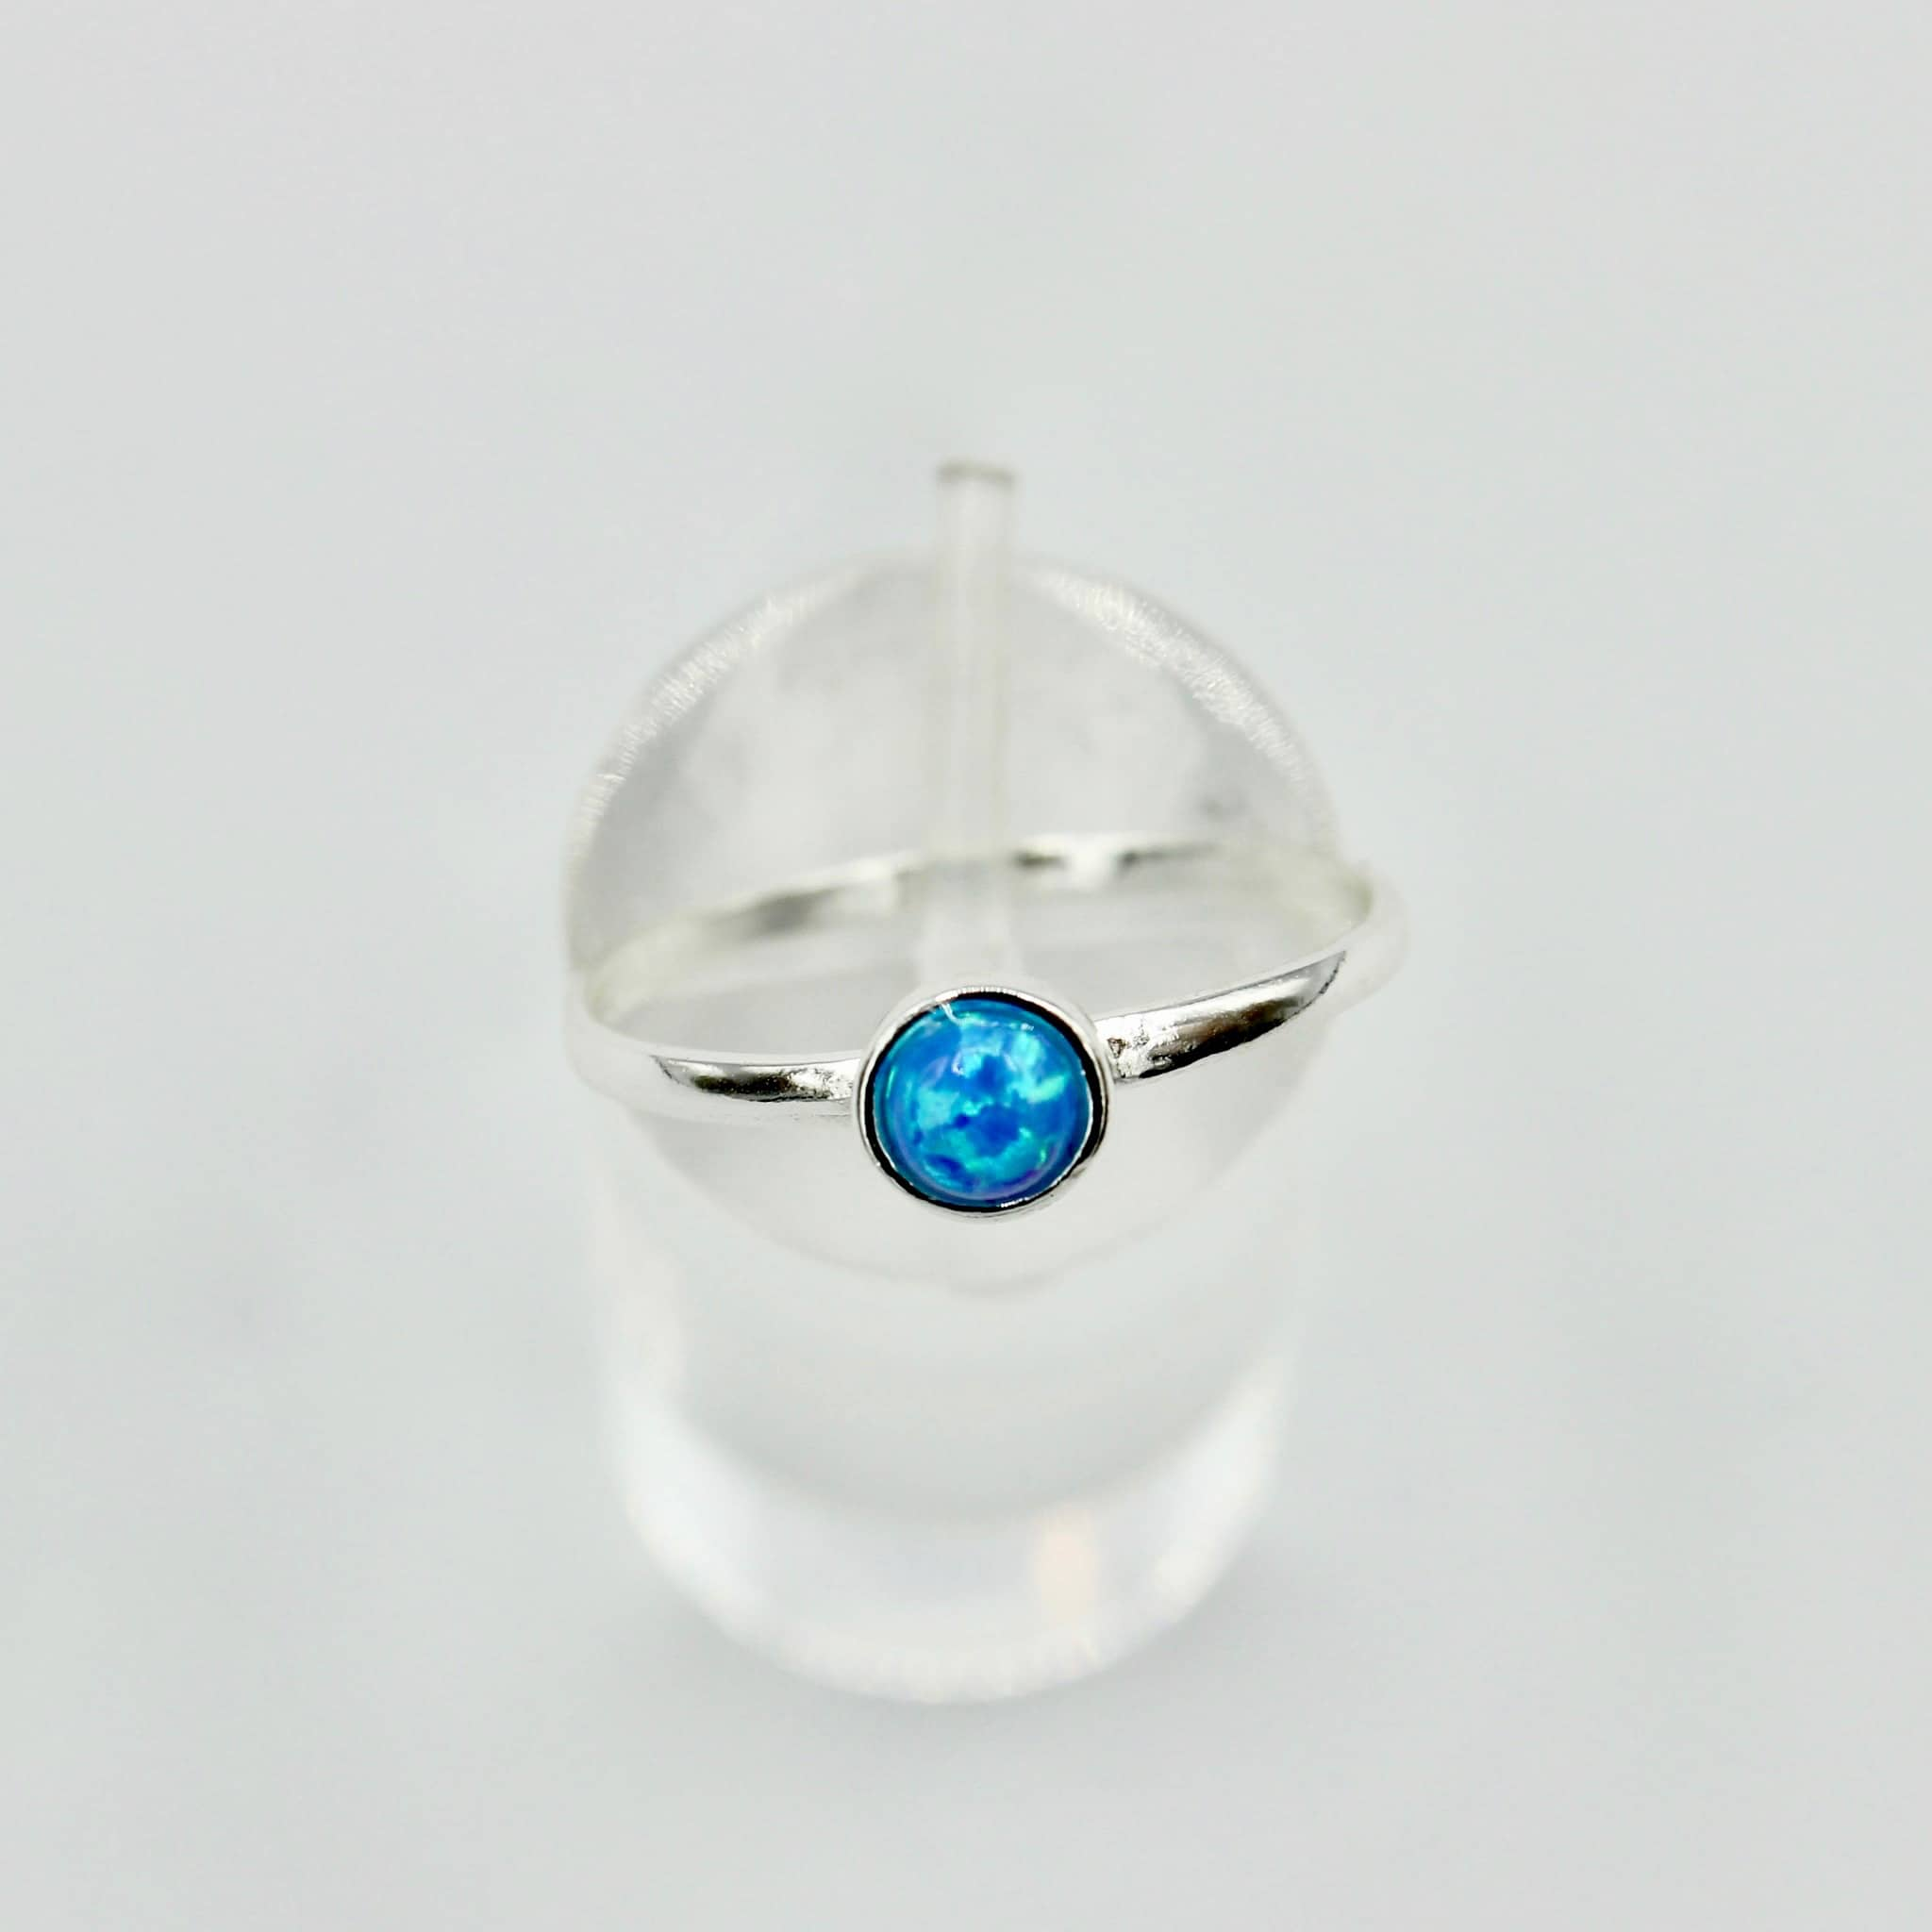 Round aqua stoned sterling silver ring